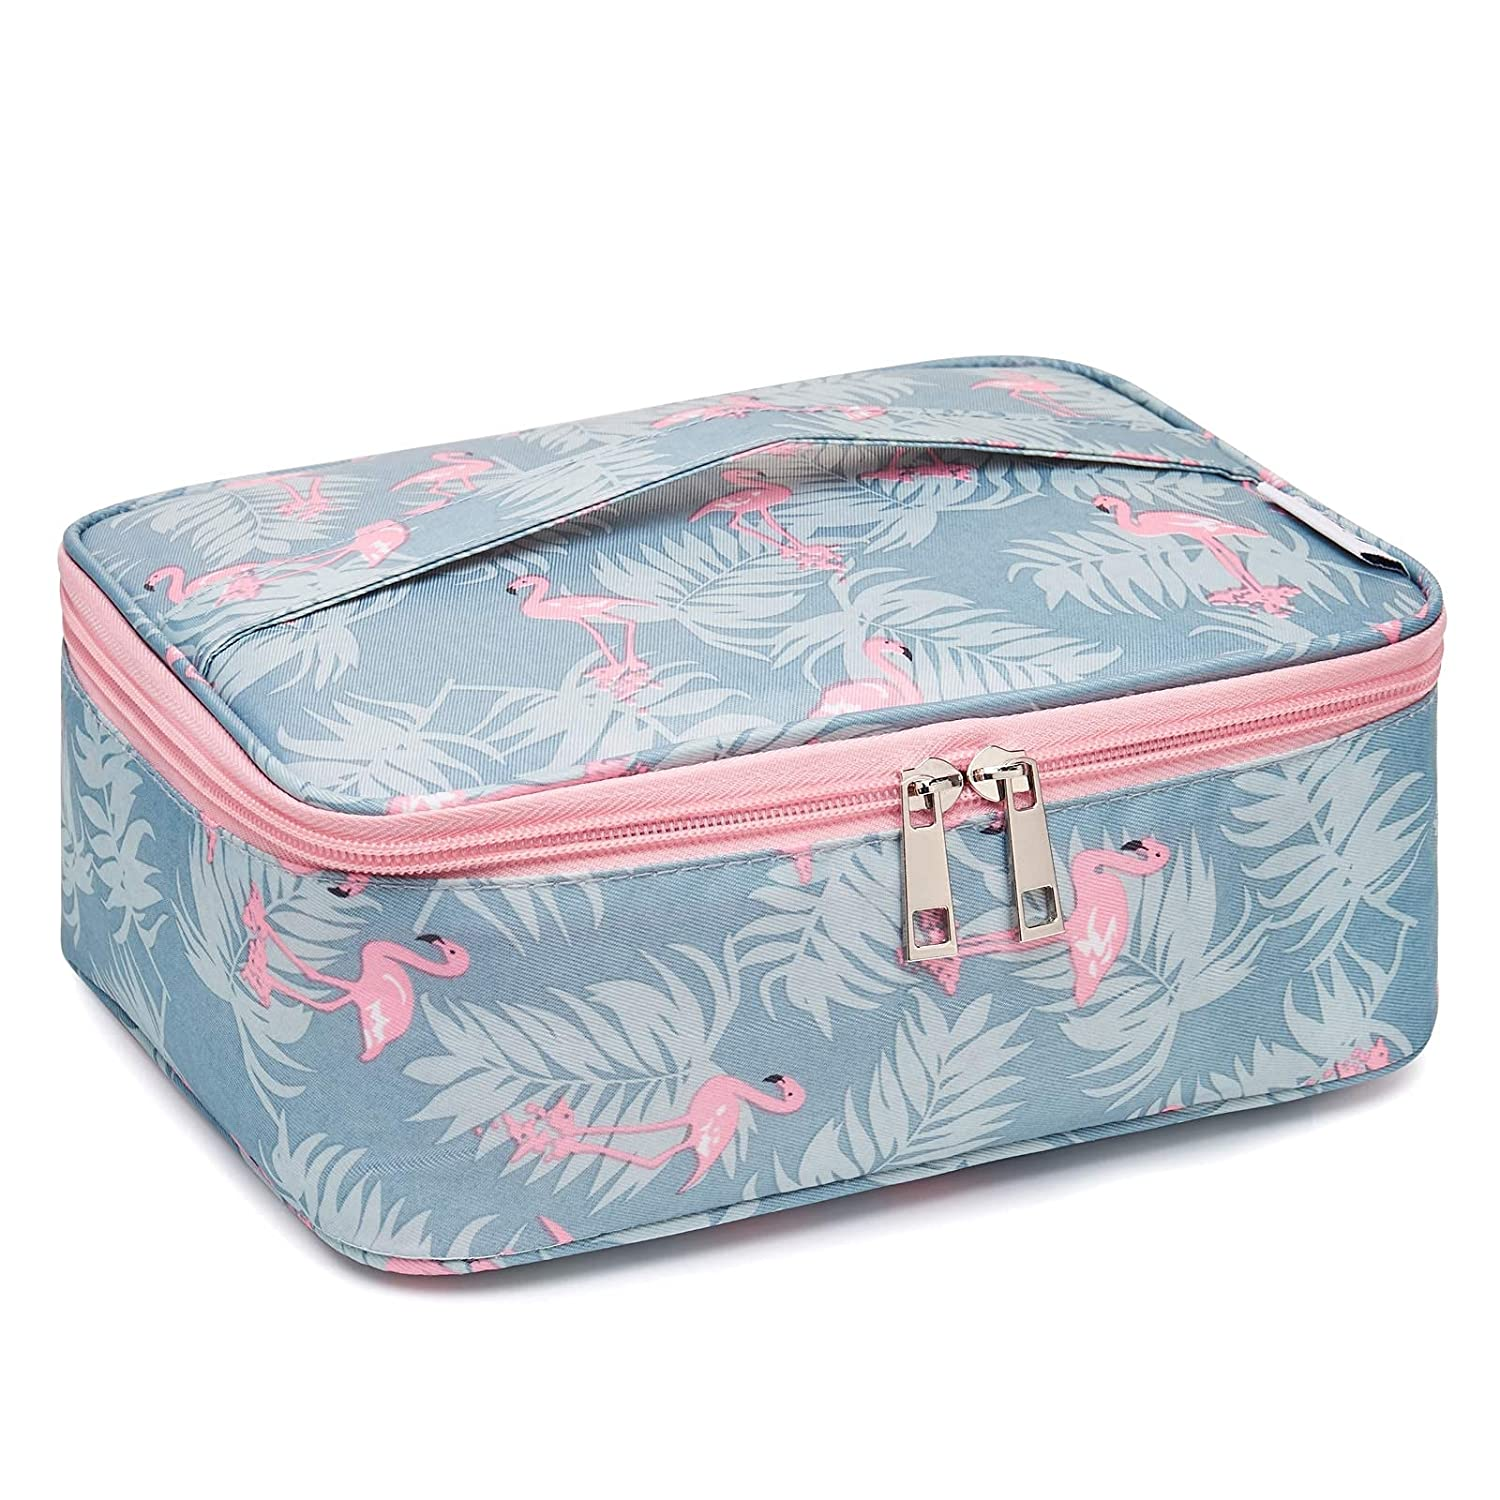 Norway large cosmetic bag for girls